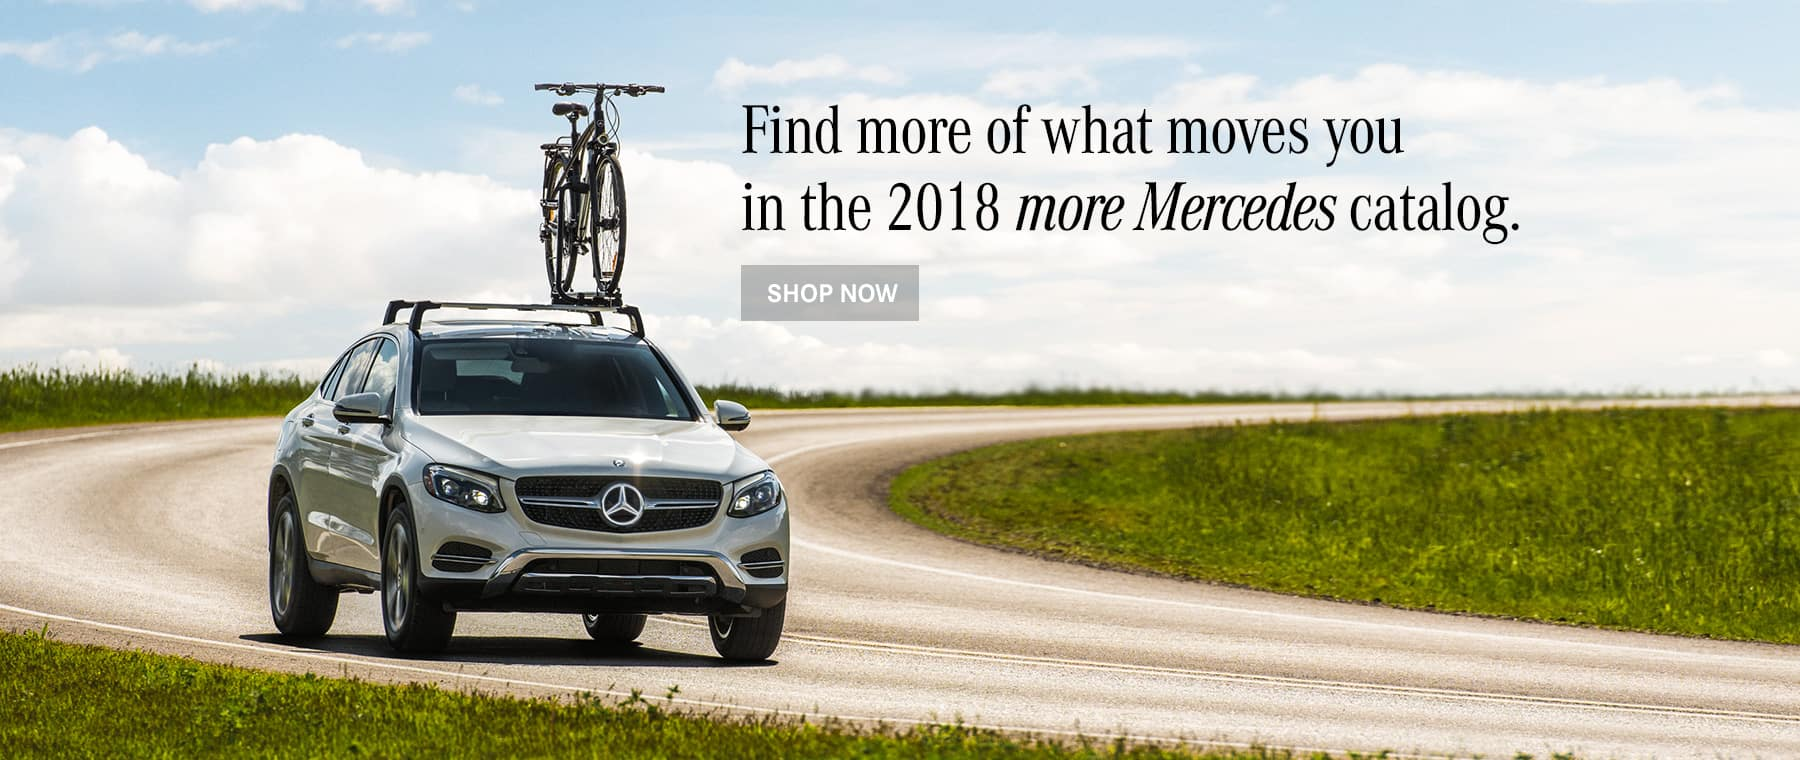 Great Mercedes Benz Of Springfield | Mercedes Benz Dealer In Chicopee, MA